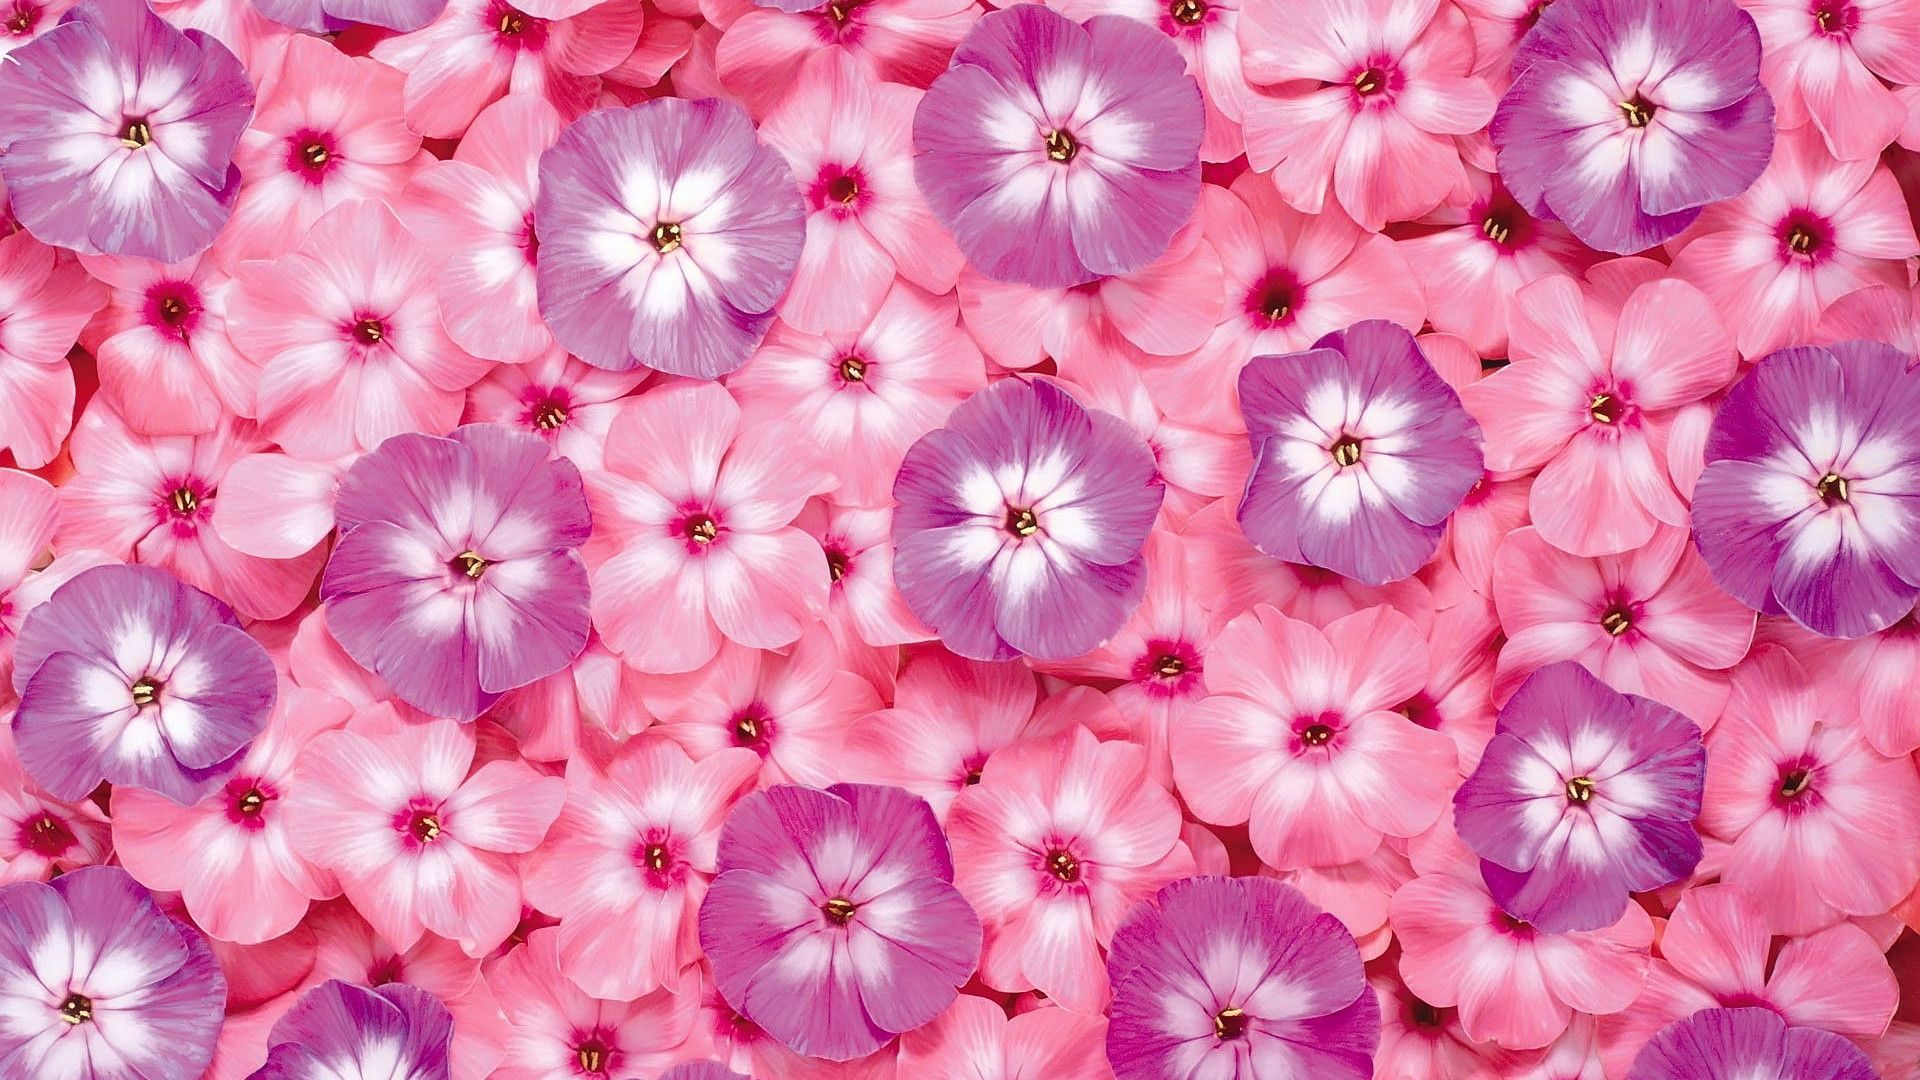 Pink flower vectors photos and psd files free download wallpapers flower mightylinksfo Images